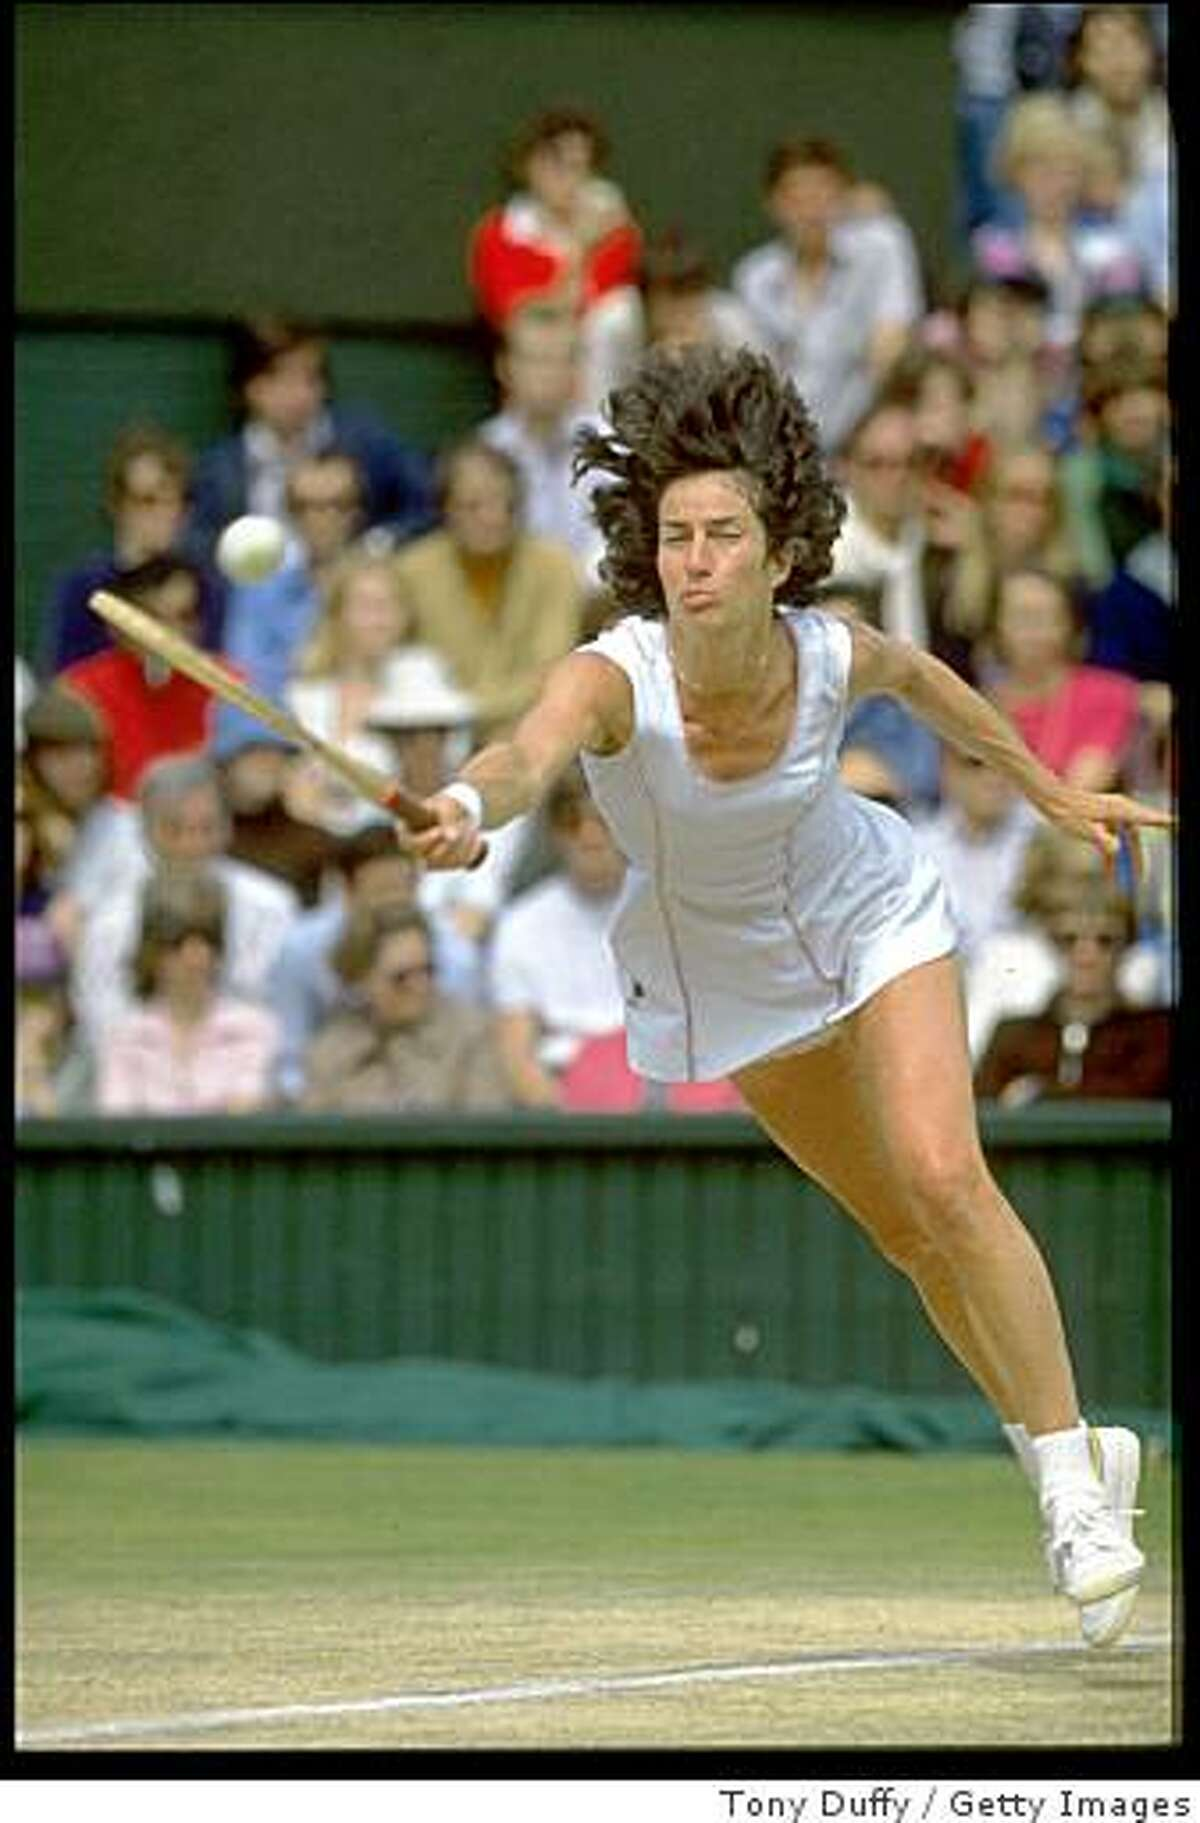 1 JUL 1977: VIRGINIA WADE OF GREAT BRITAIN DIVES TO REACH THE BALL DURING THE LADIES FINAL AT THE 1977 WIMBLEDON TENNIS CHAMPIONSHIPS. WADE DEFEATED BETTY STOVE OF HOLLAND 4-6, 6-3, 6-1.